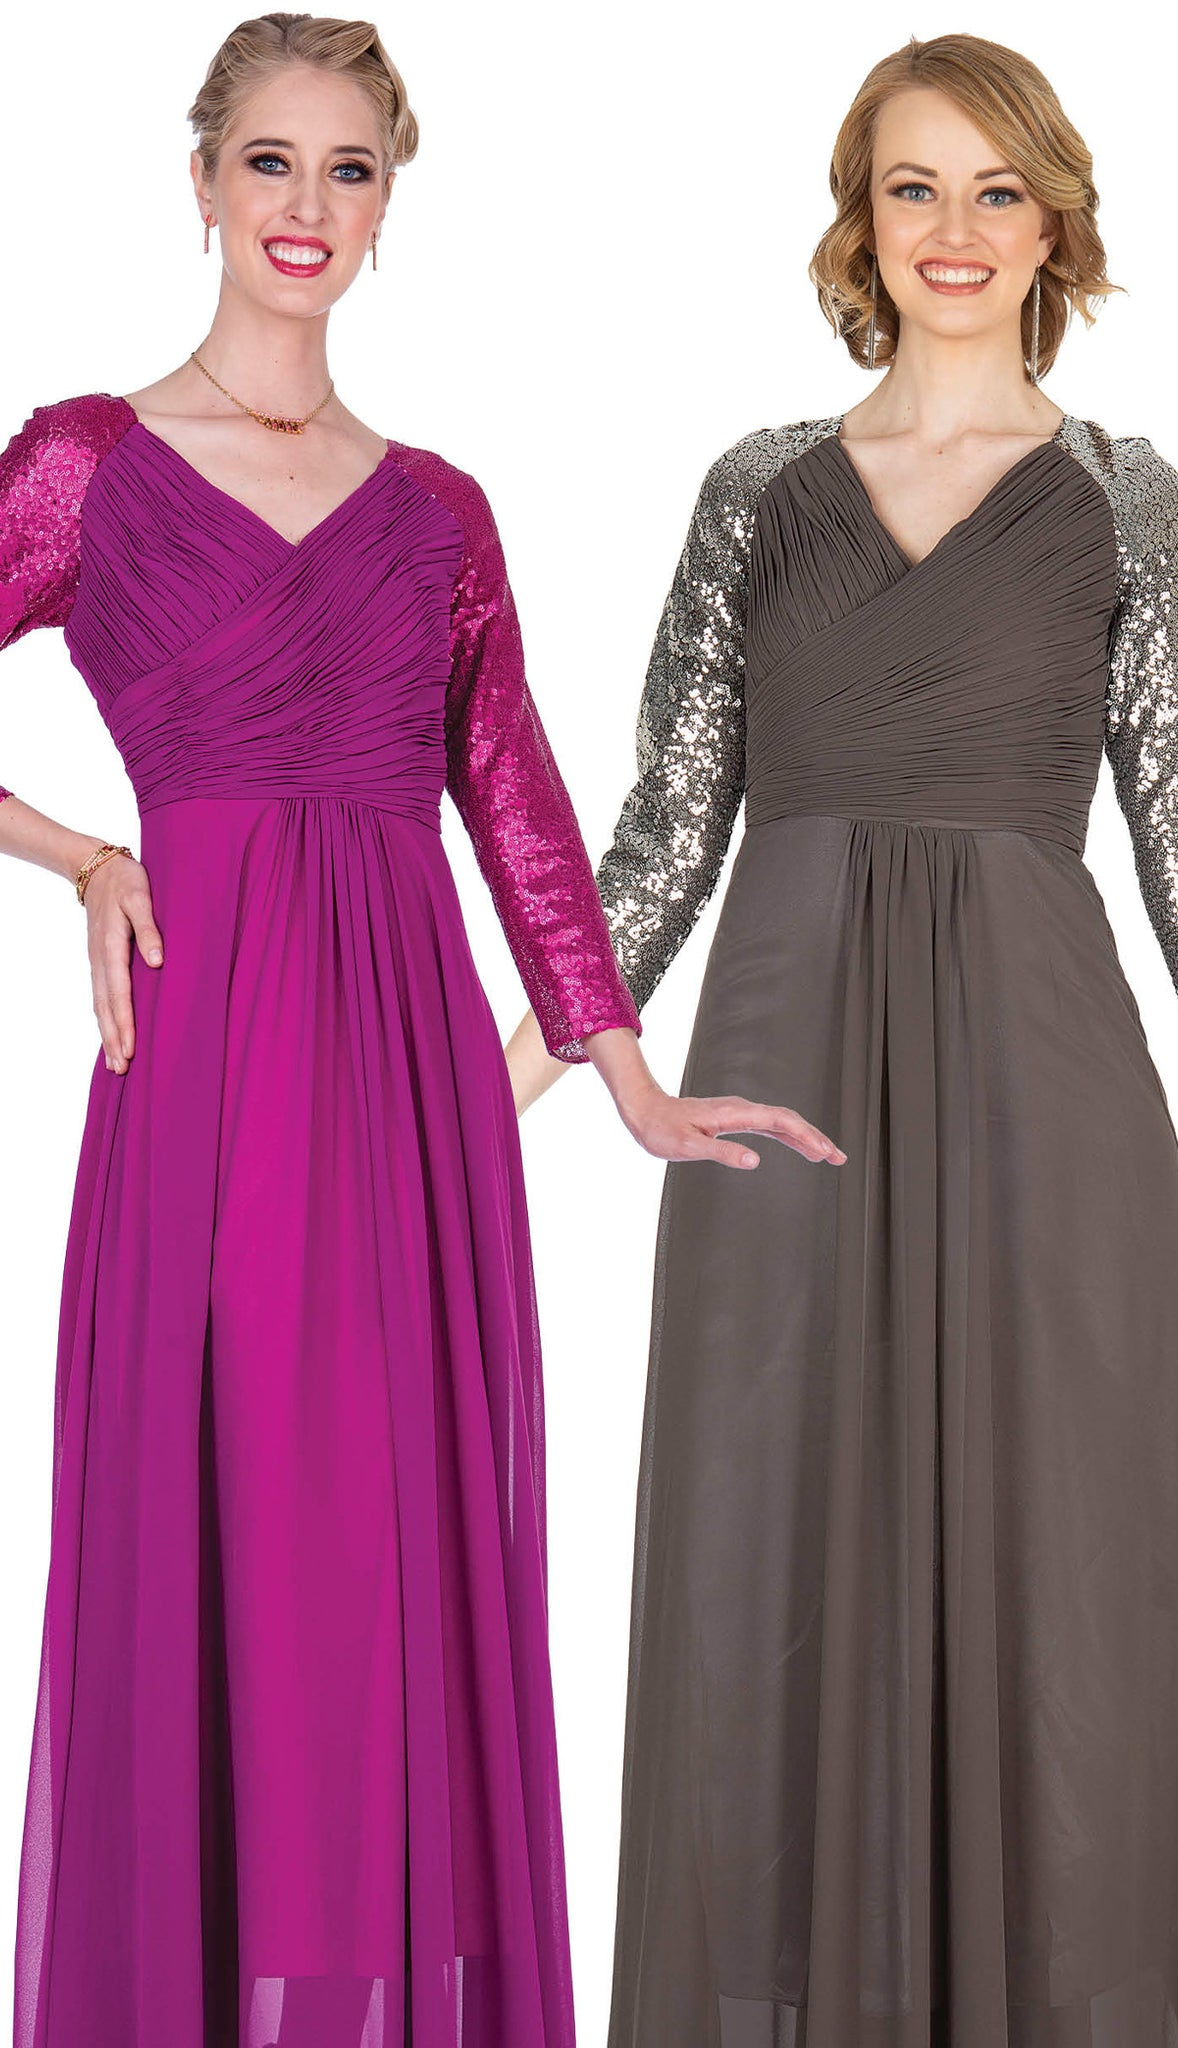 Aussie Austine Dress 5372 - Church Suits For Less